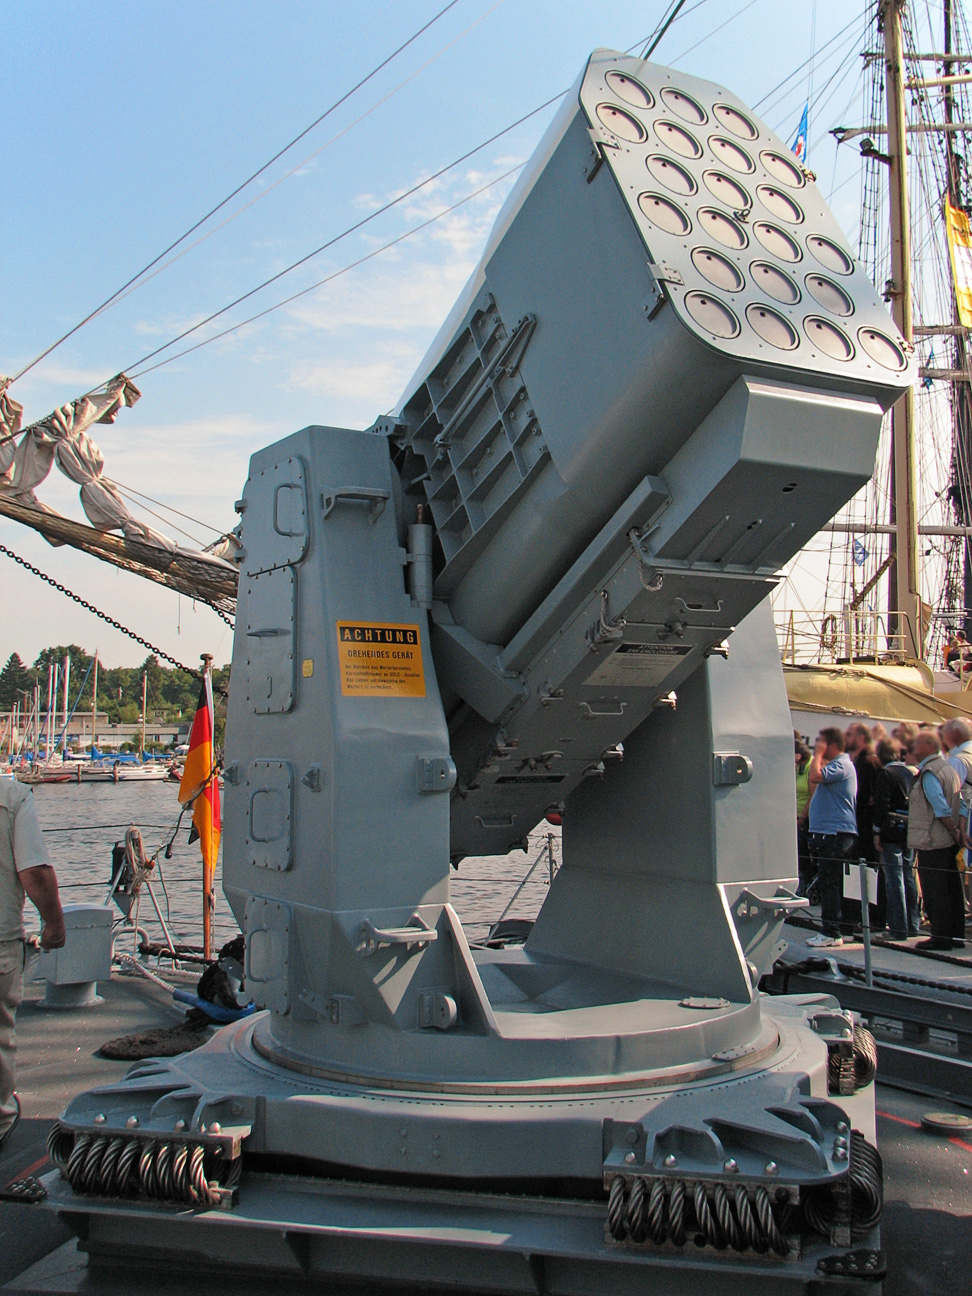 https://i0.wp.com/upload.wikimedia.org/wikipedia/commons/2/2c/RIM-116_Rolling_Airframe_Missile_Launcher_3.jpg